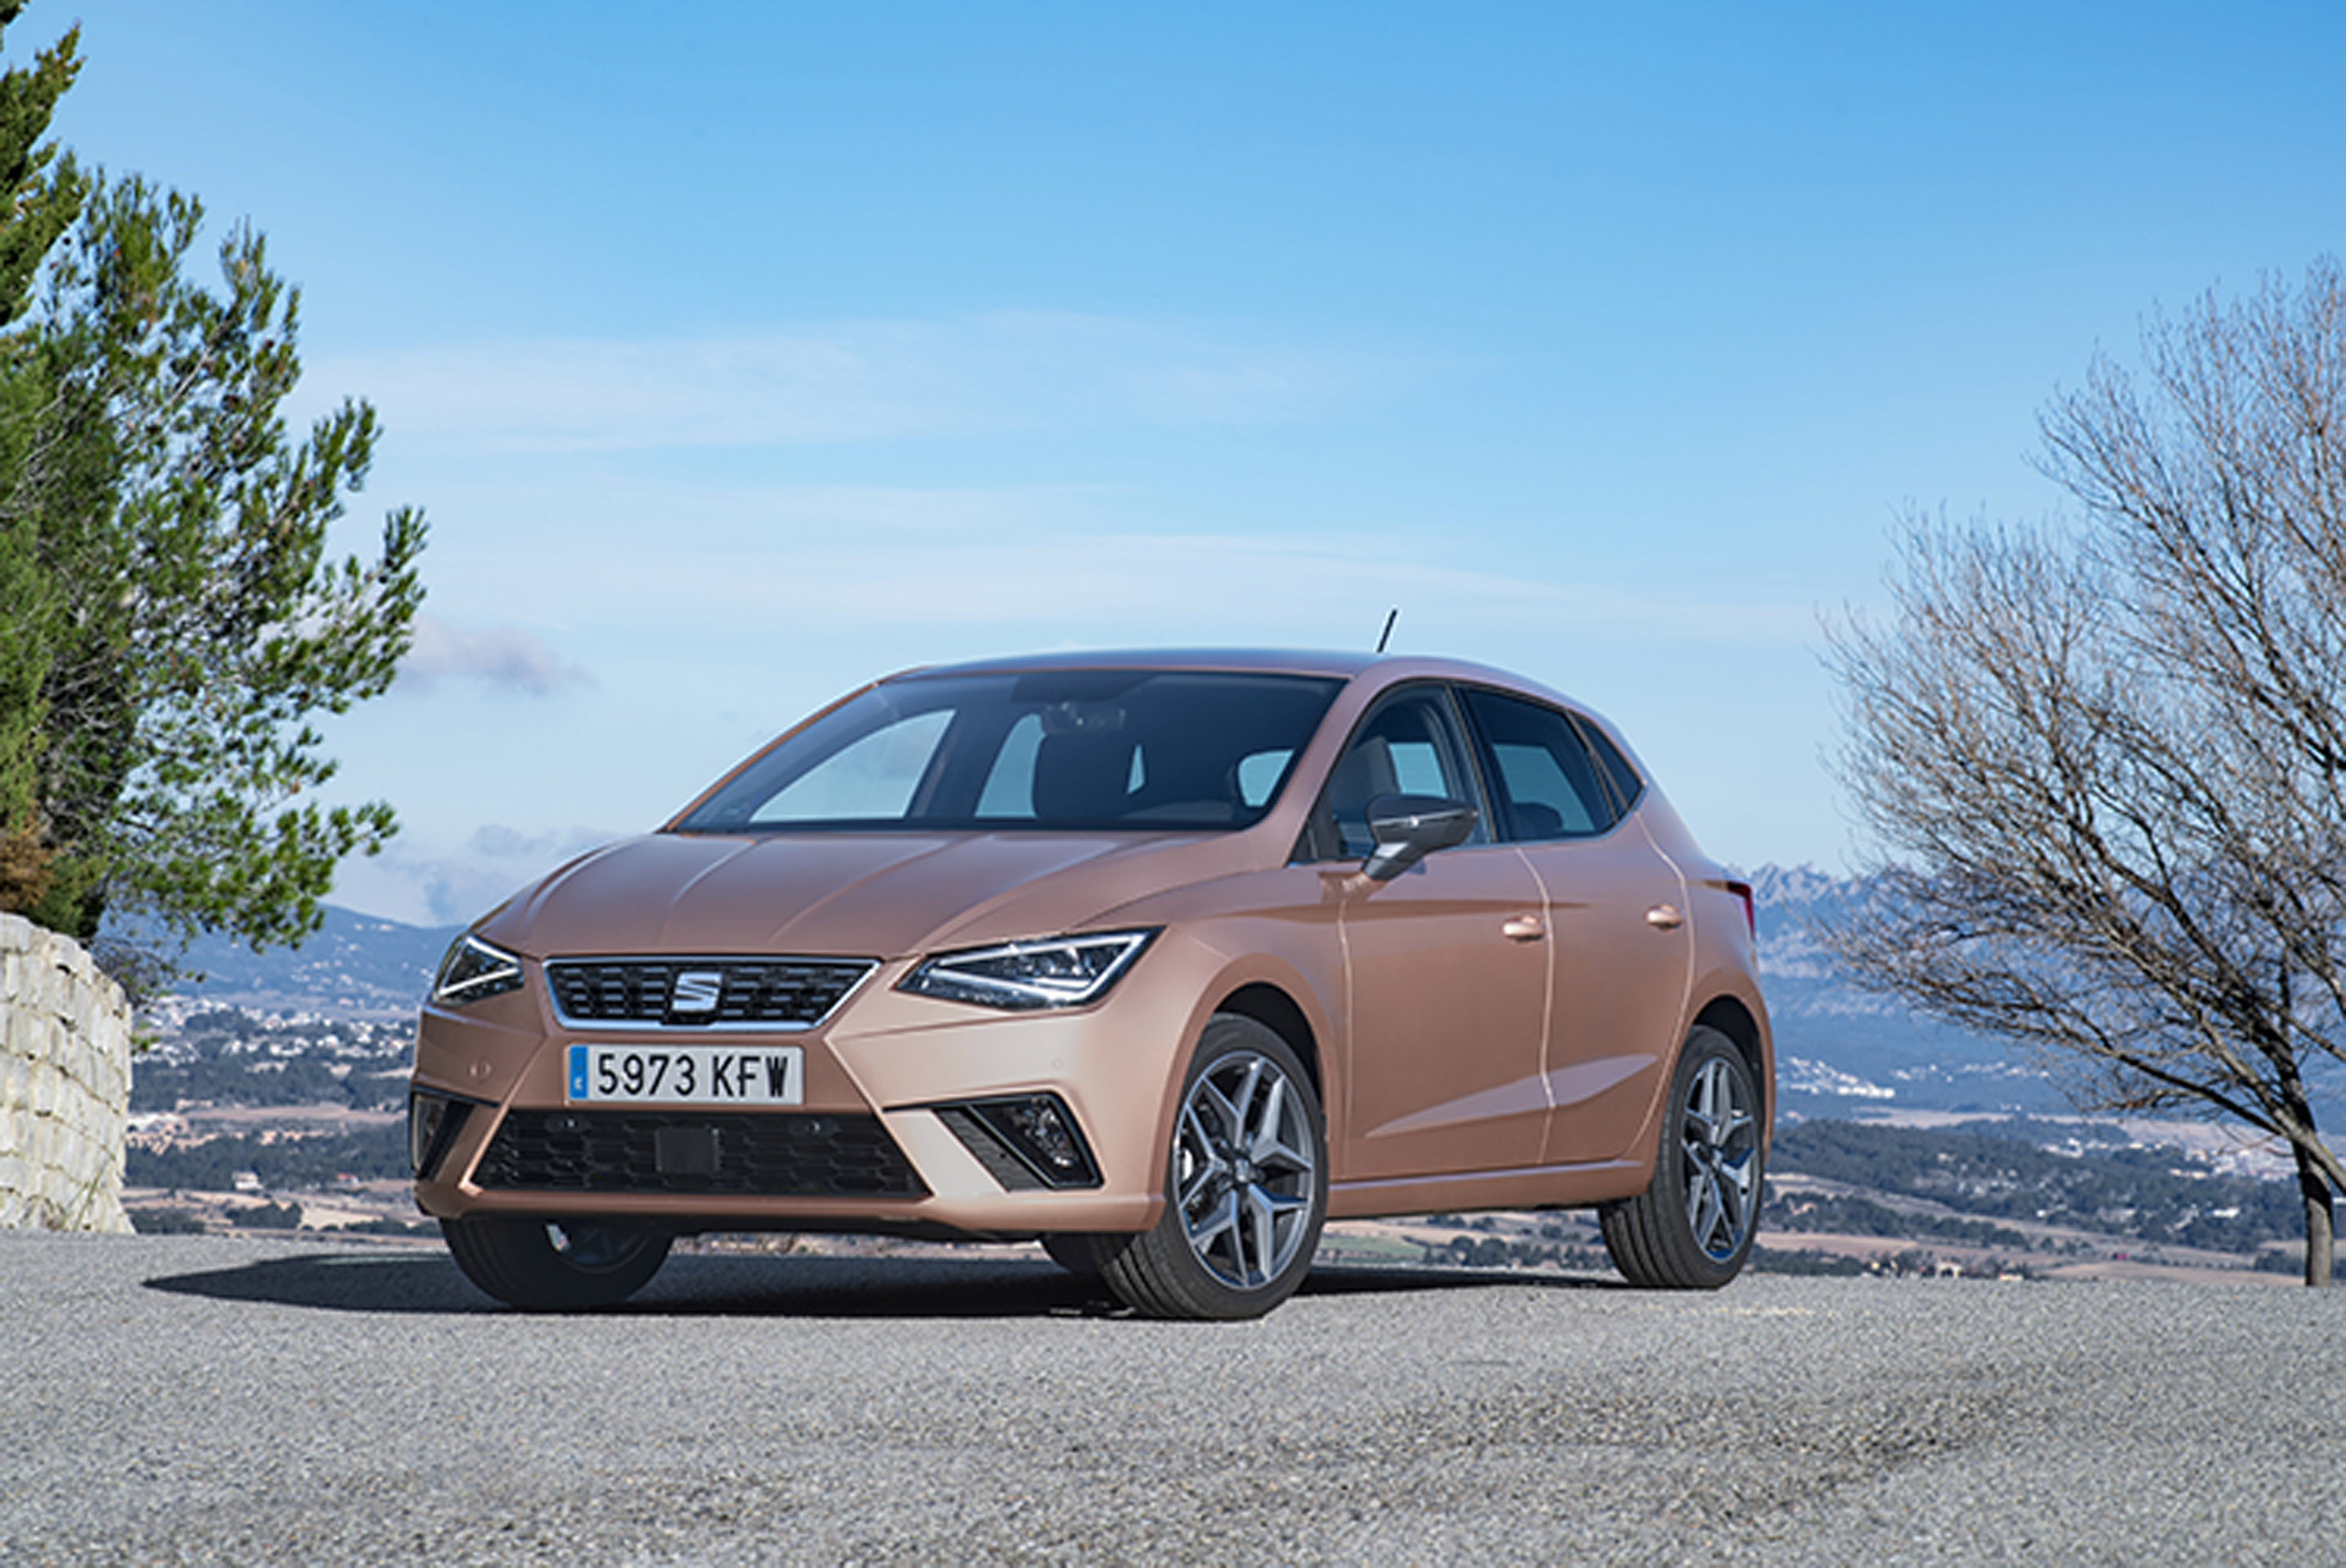 Most Expensive Car Seat >> The new Seat Ibiza is modest in design, but strong in ...